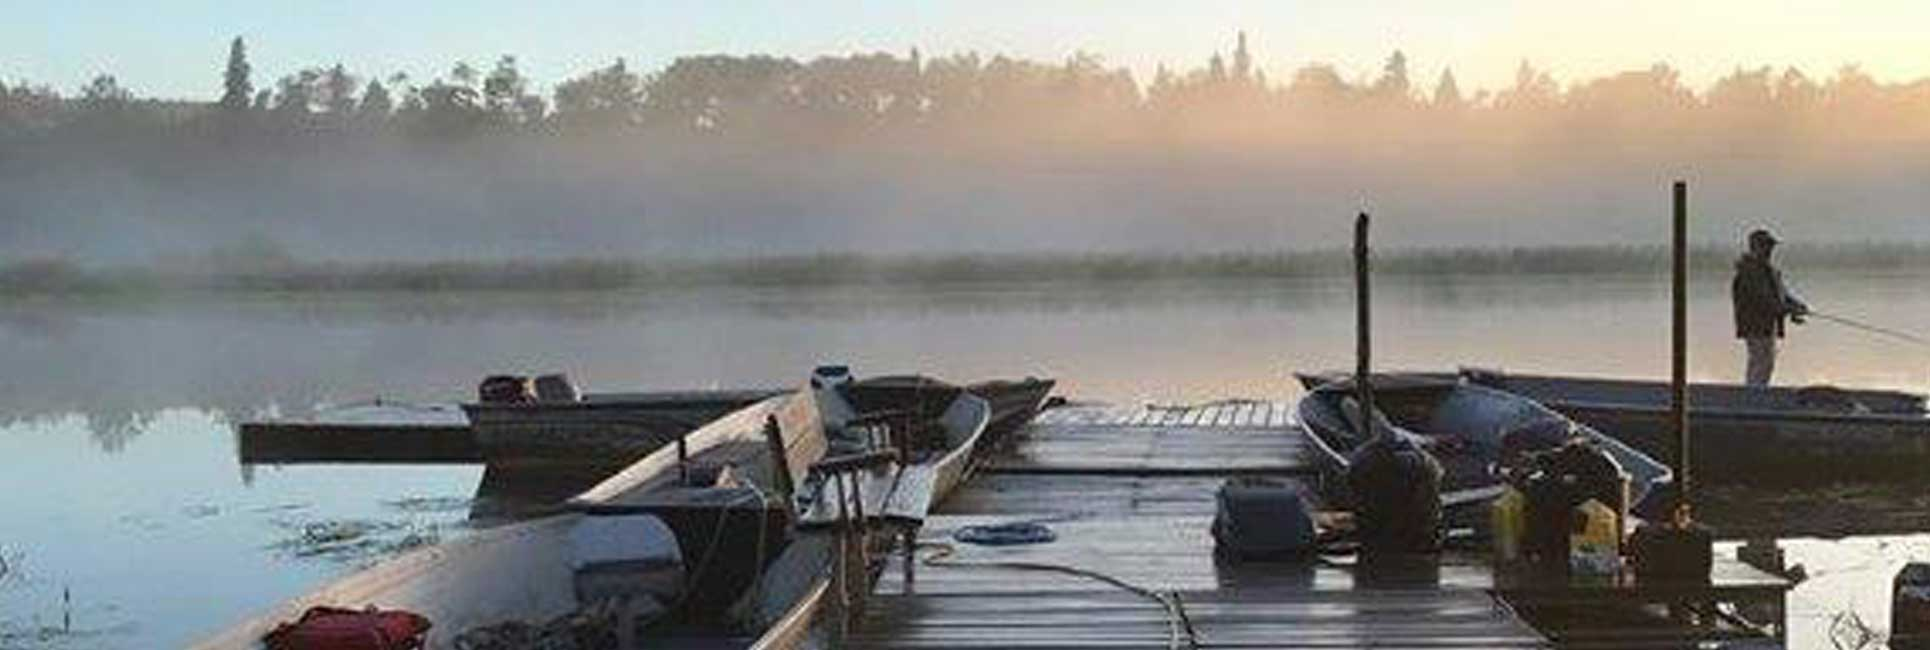 Wooden boat dock with two fishing boats on a foggy lake in Minnesota